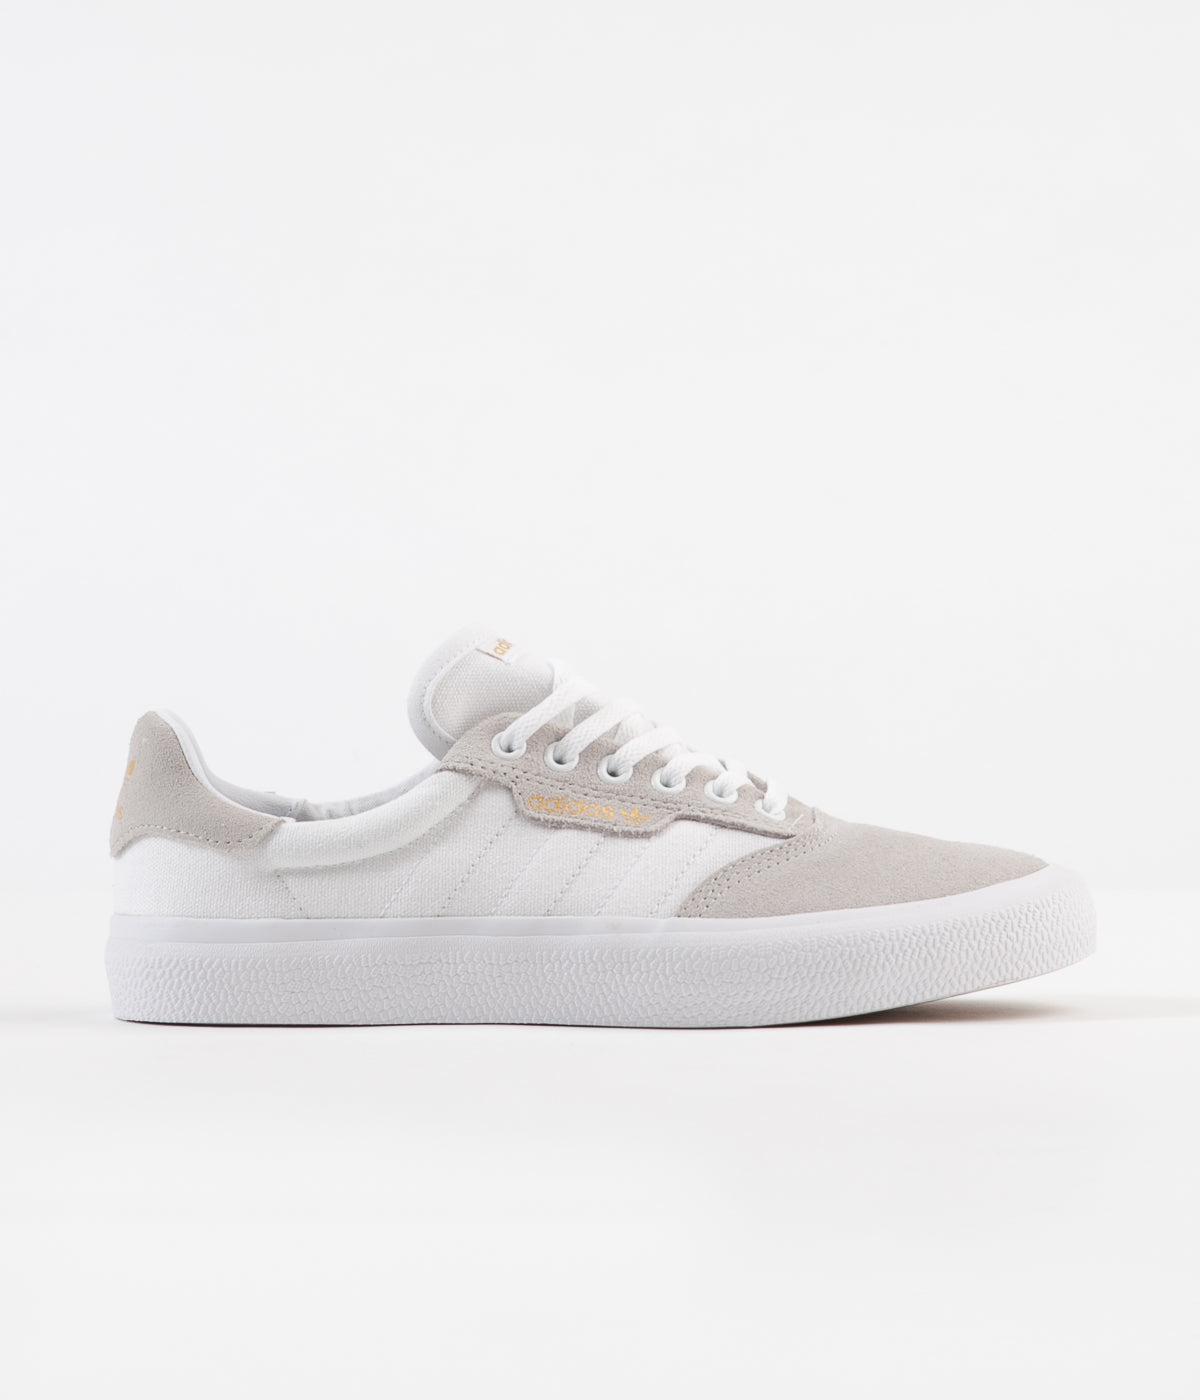 Adidas 3MC Shoes - White / Crystal White / Metallic Gold